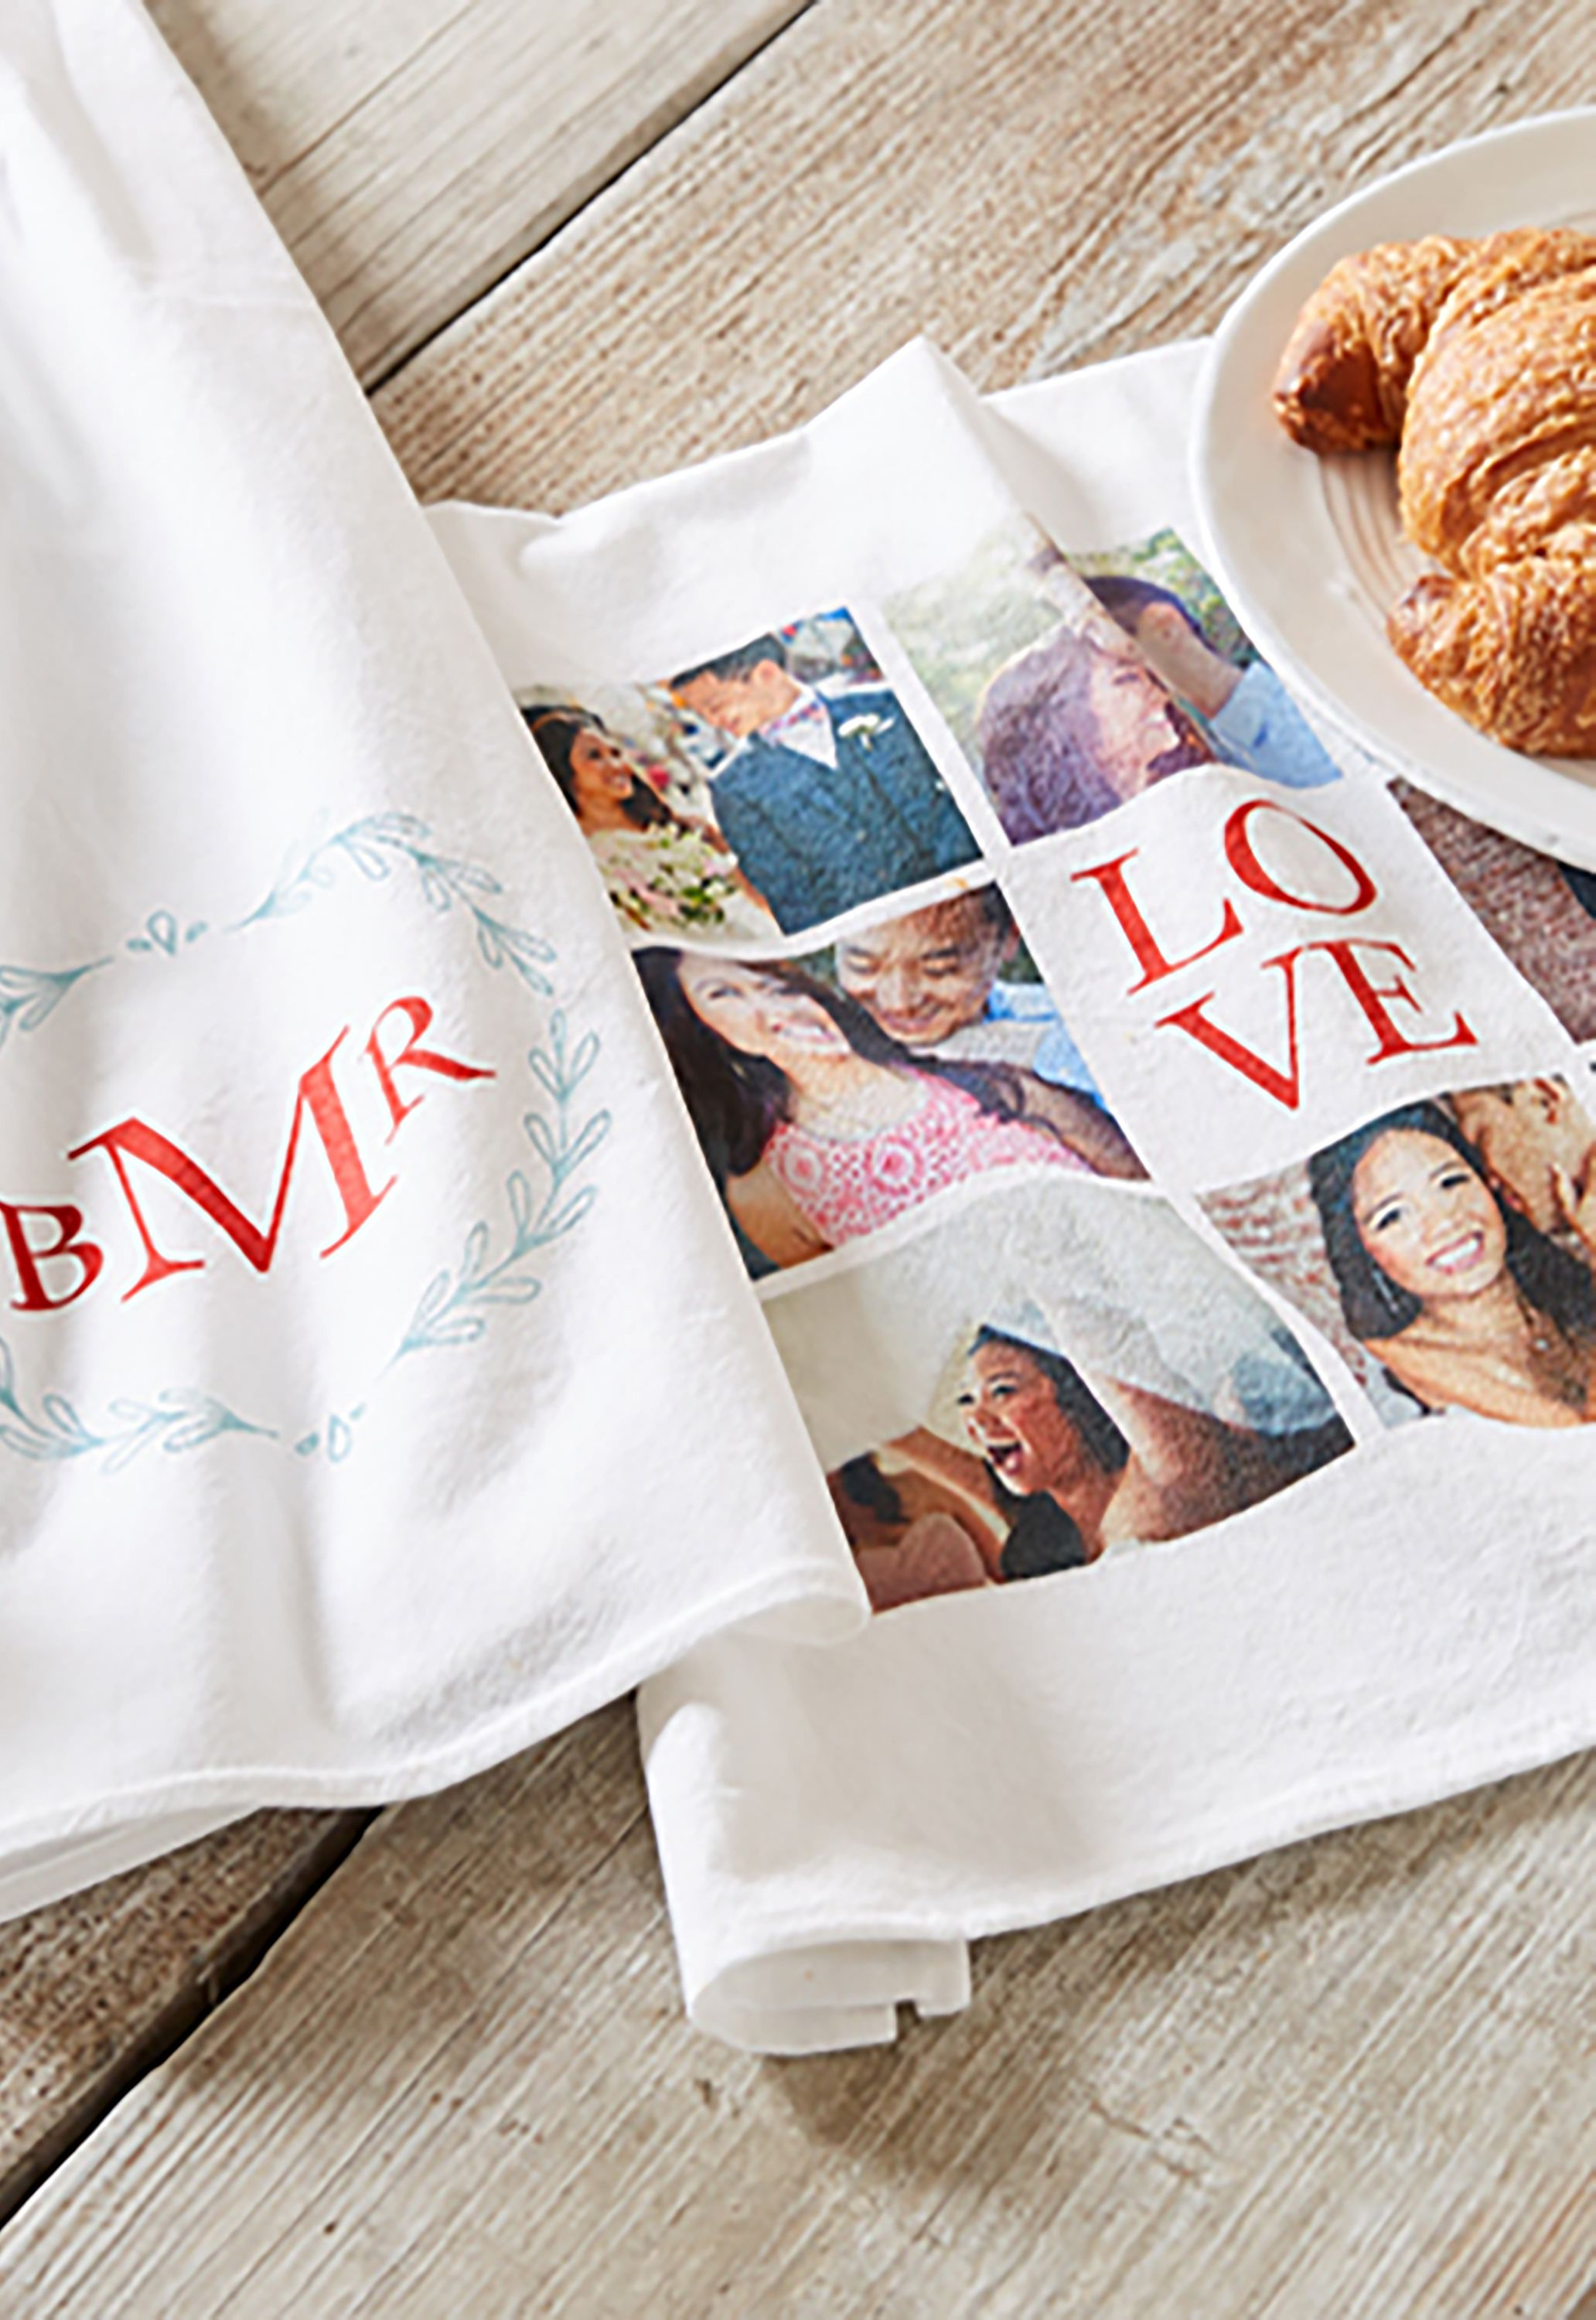 25 Personalized Photo Gift Ideas - Best Family Photo Gifts for Christmas